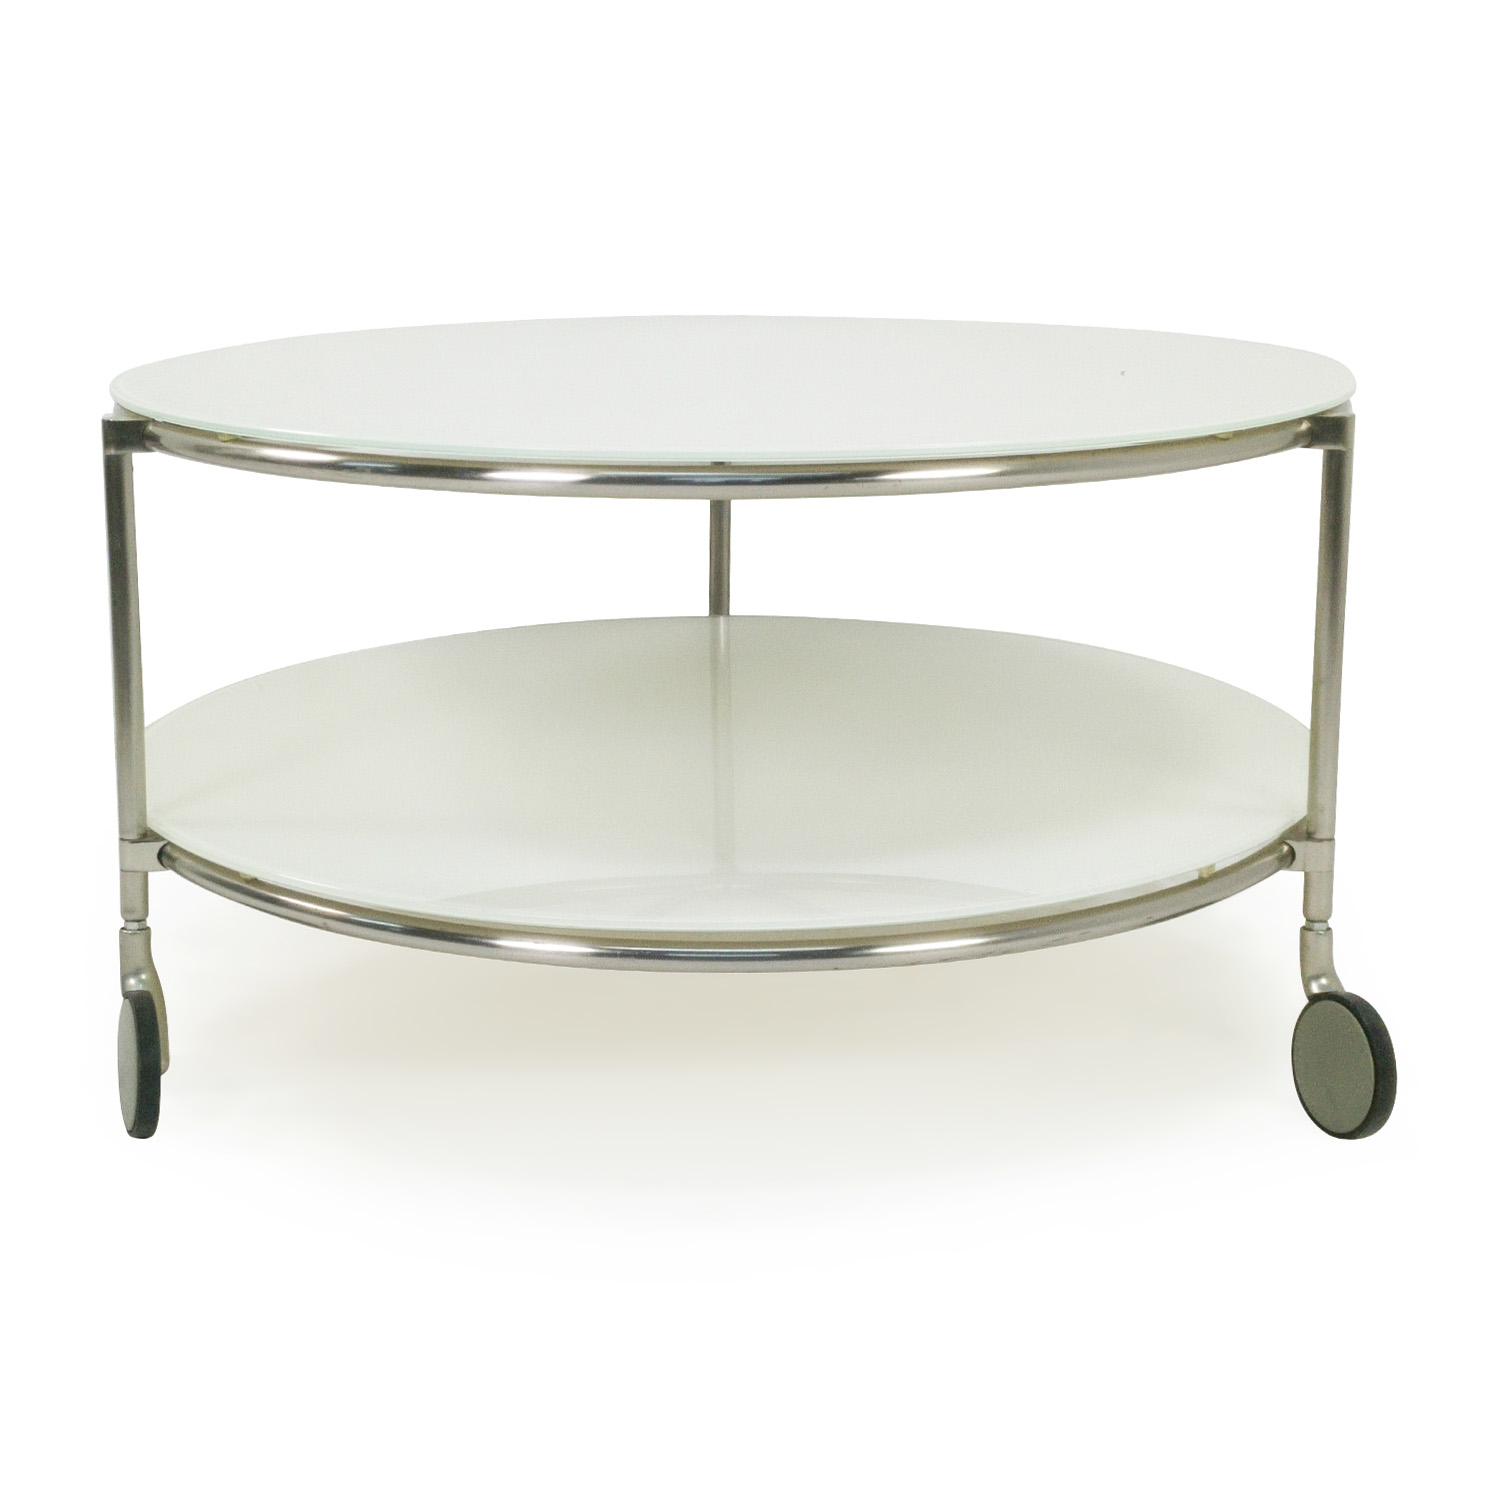 Glass Coffee Table With Wheels Home Design